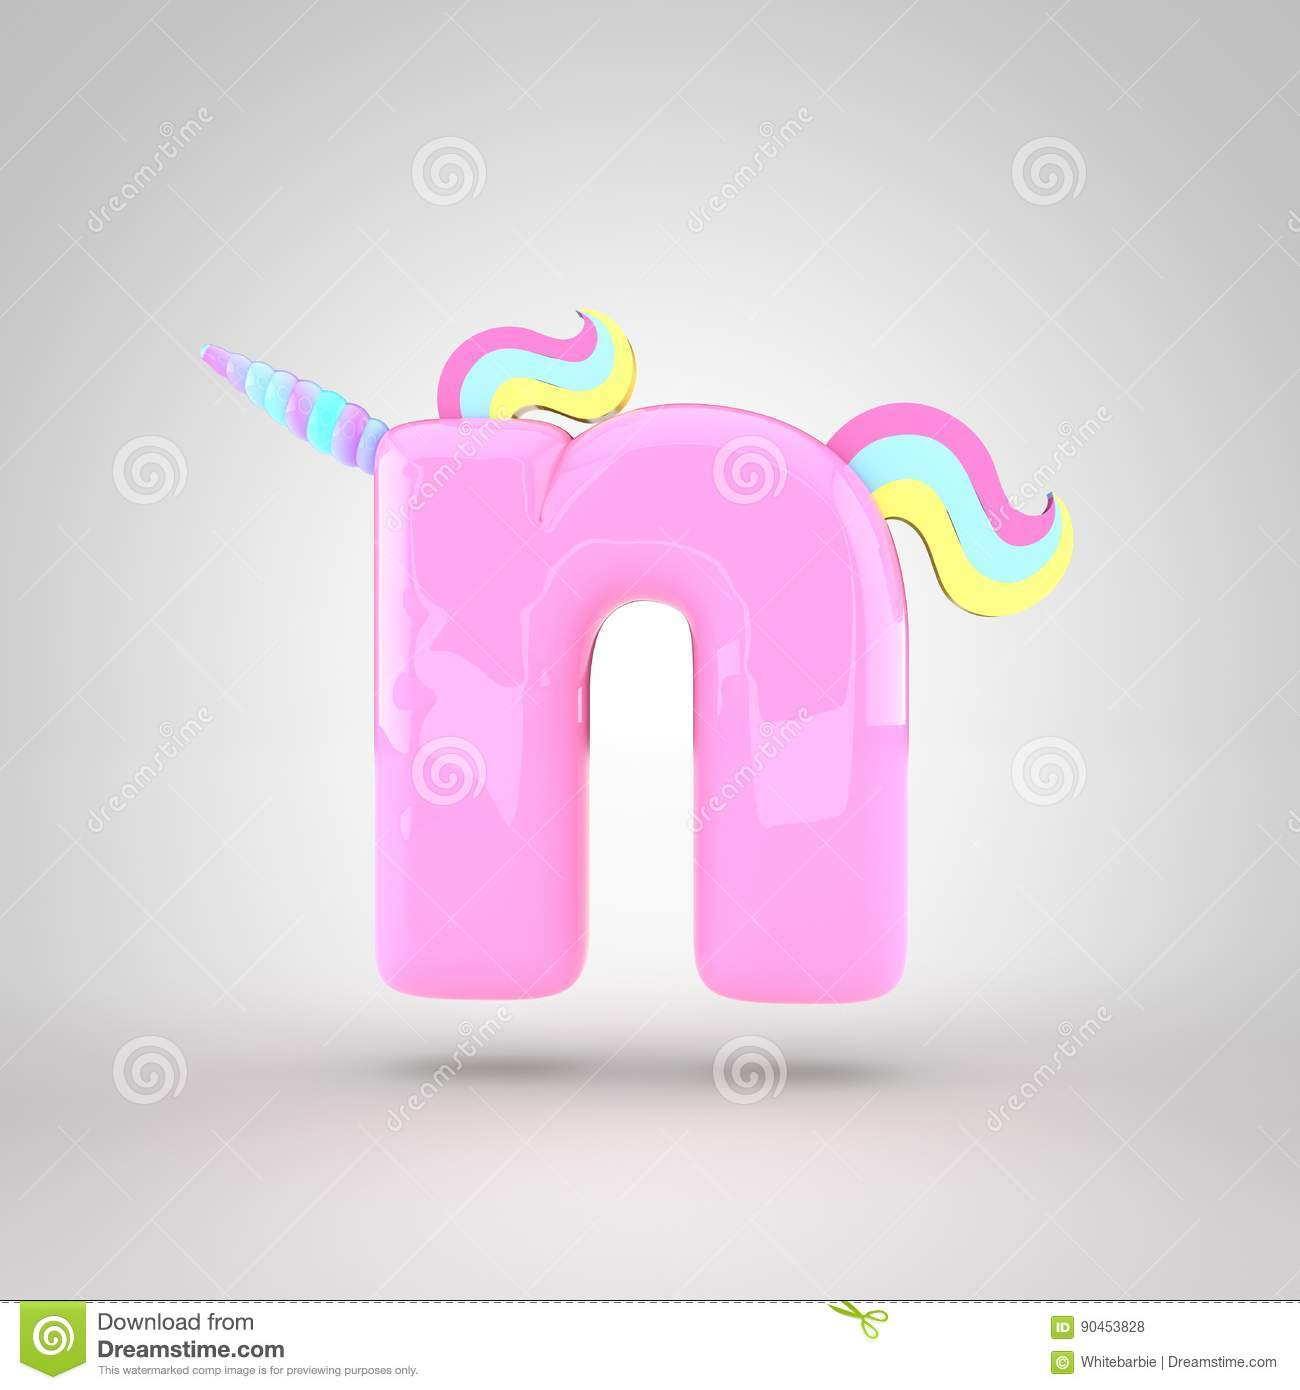 cute unicorn pink letter n lowercase